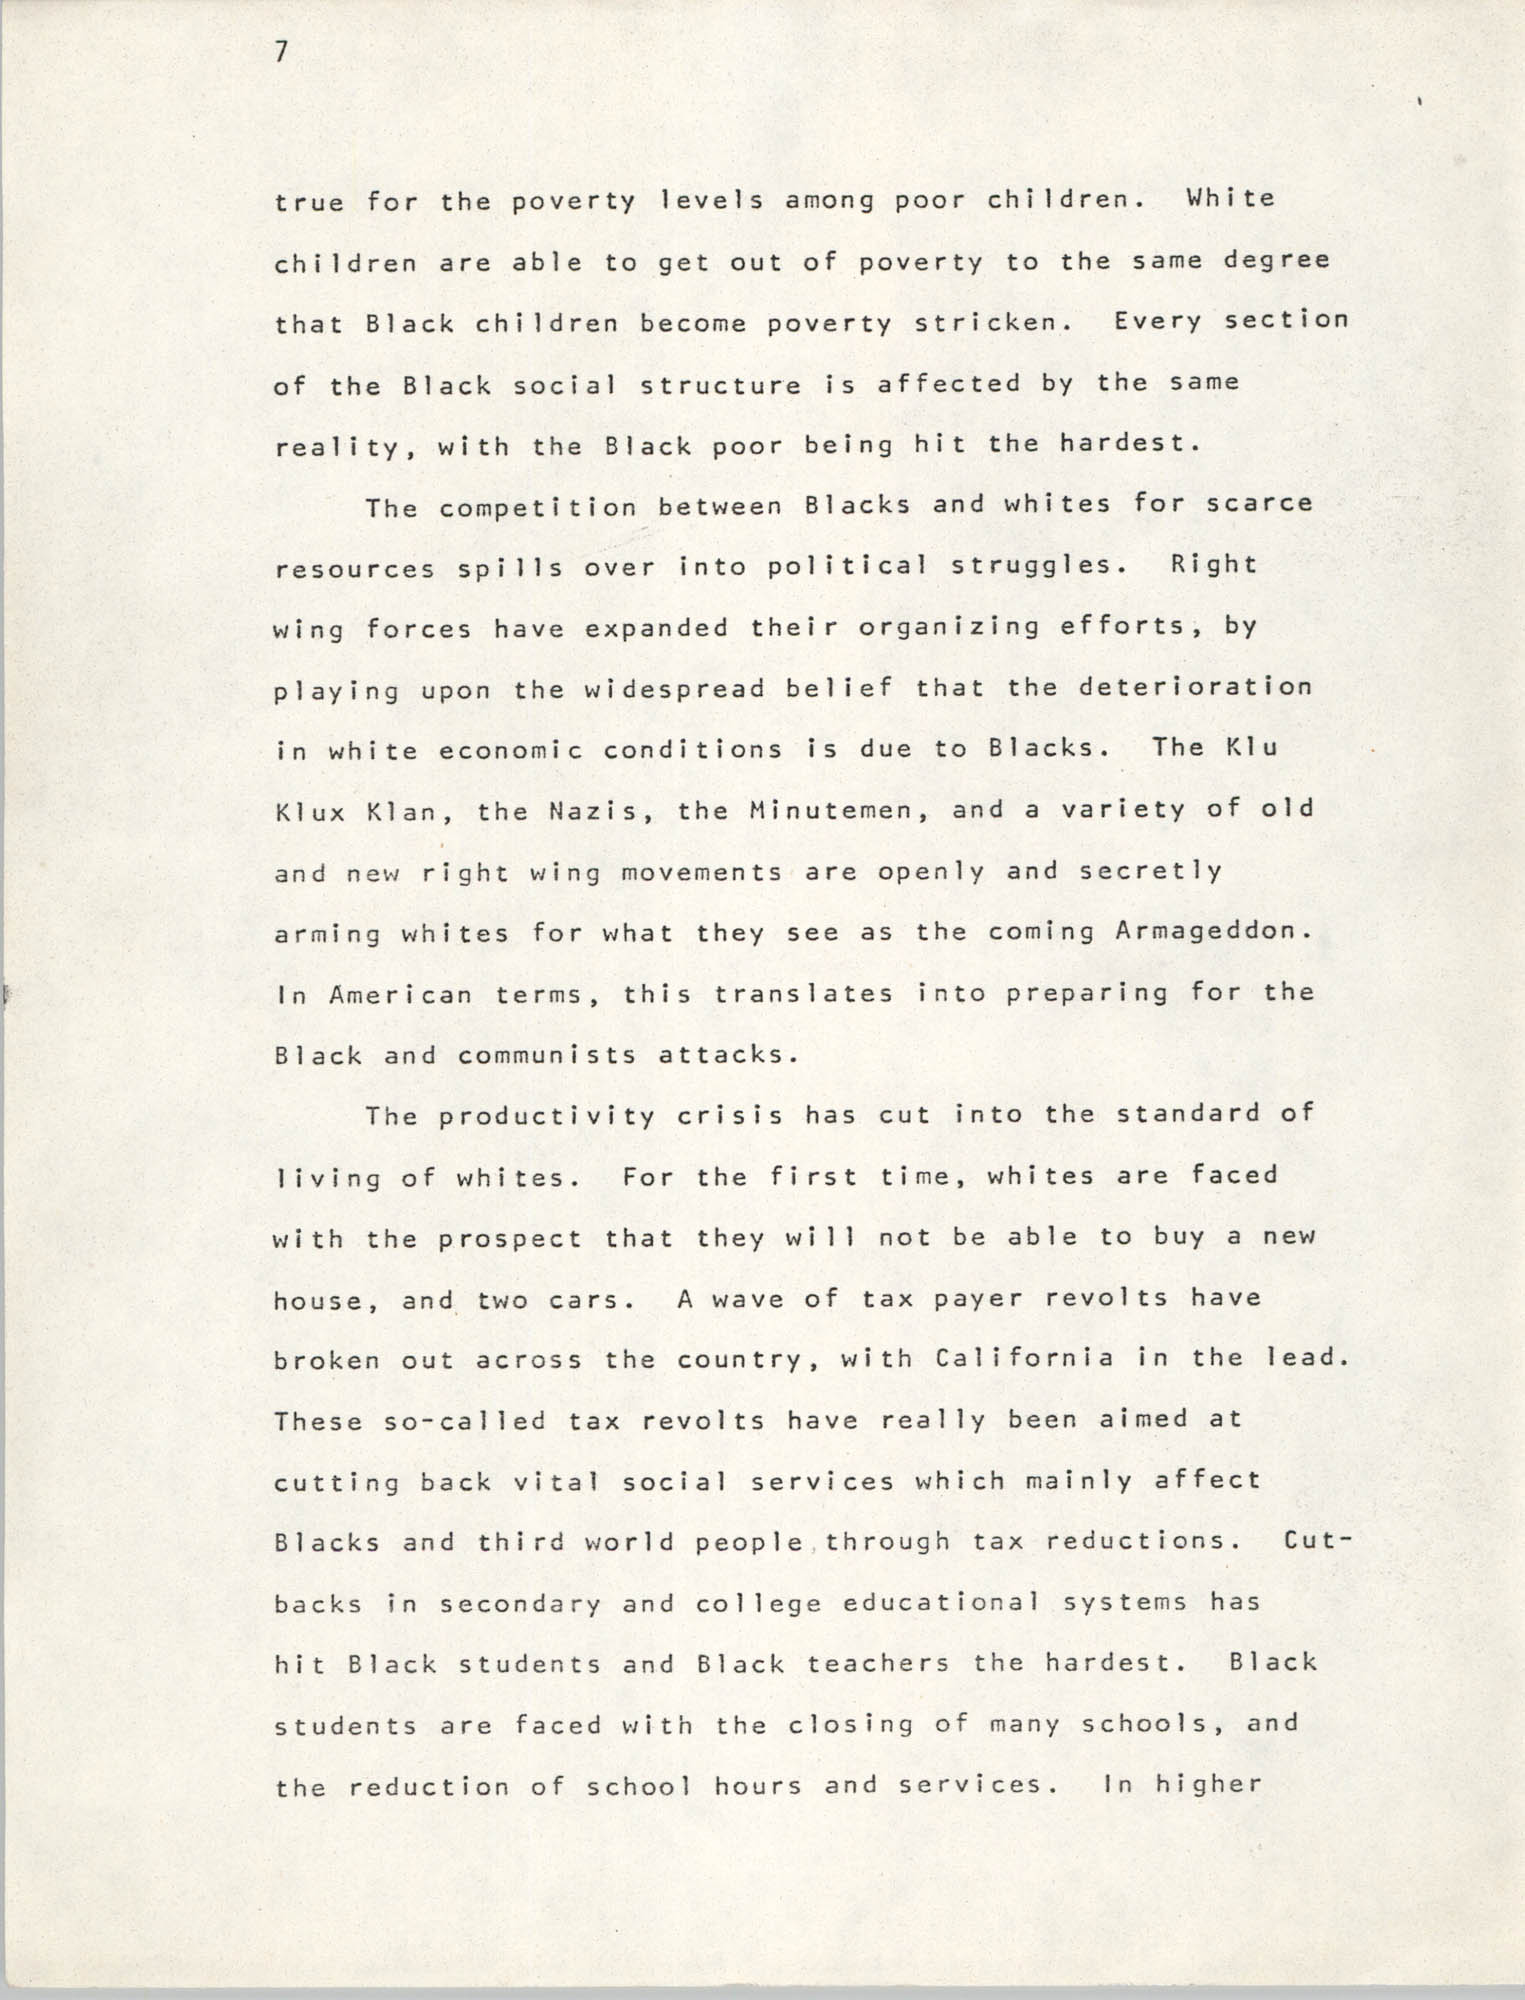 Pan-African Committee of the Black United Front, Page 7